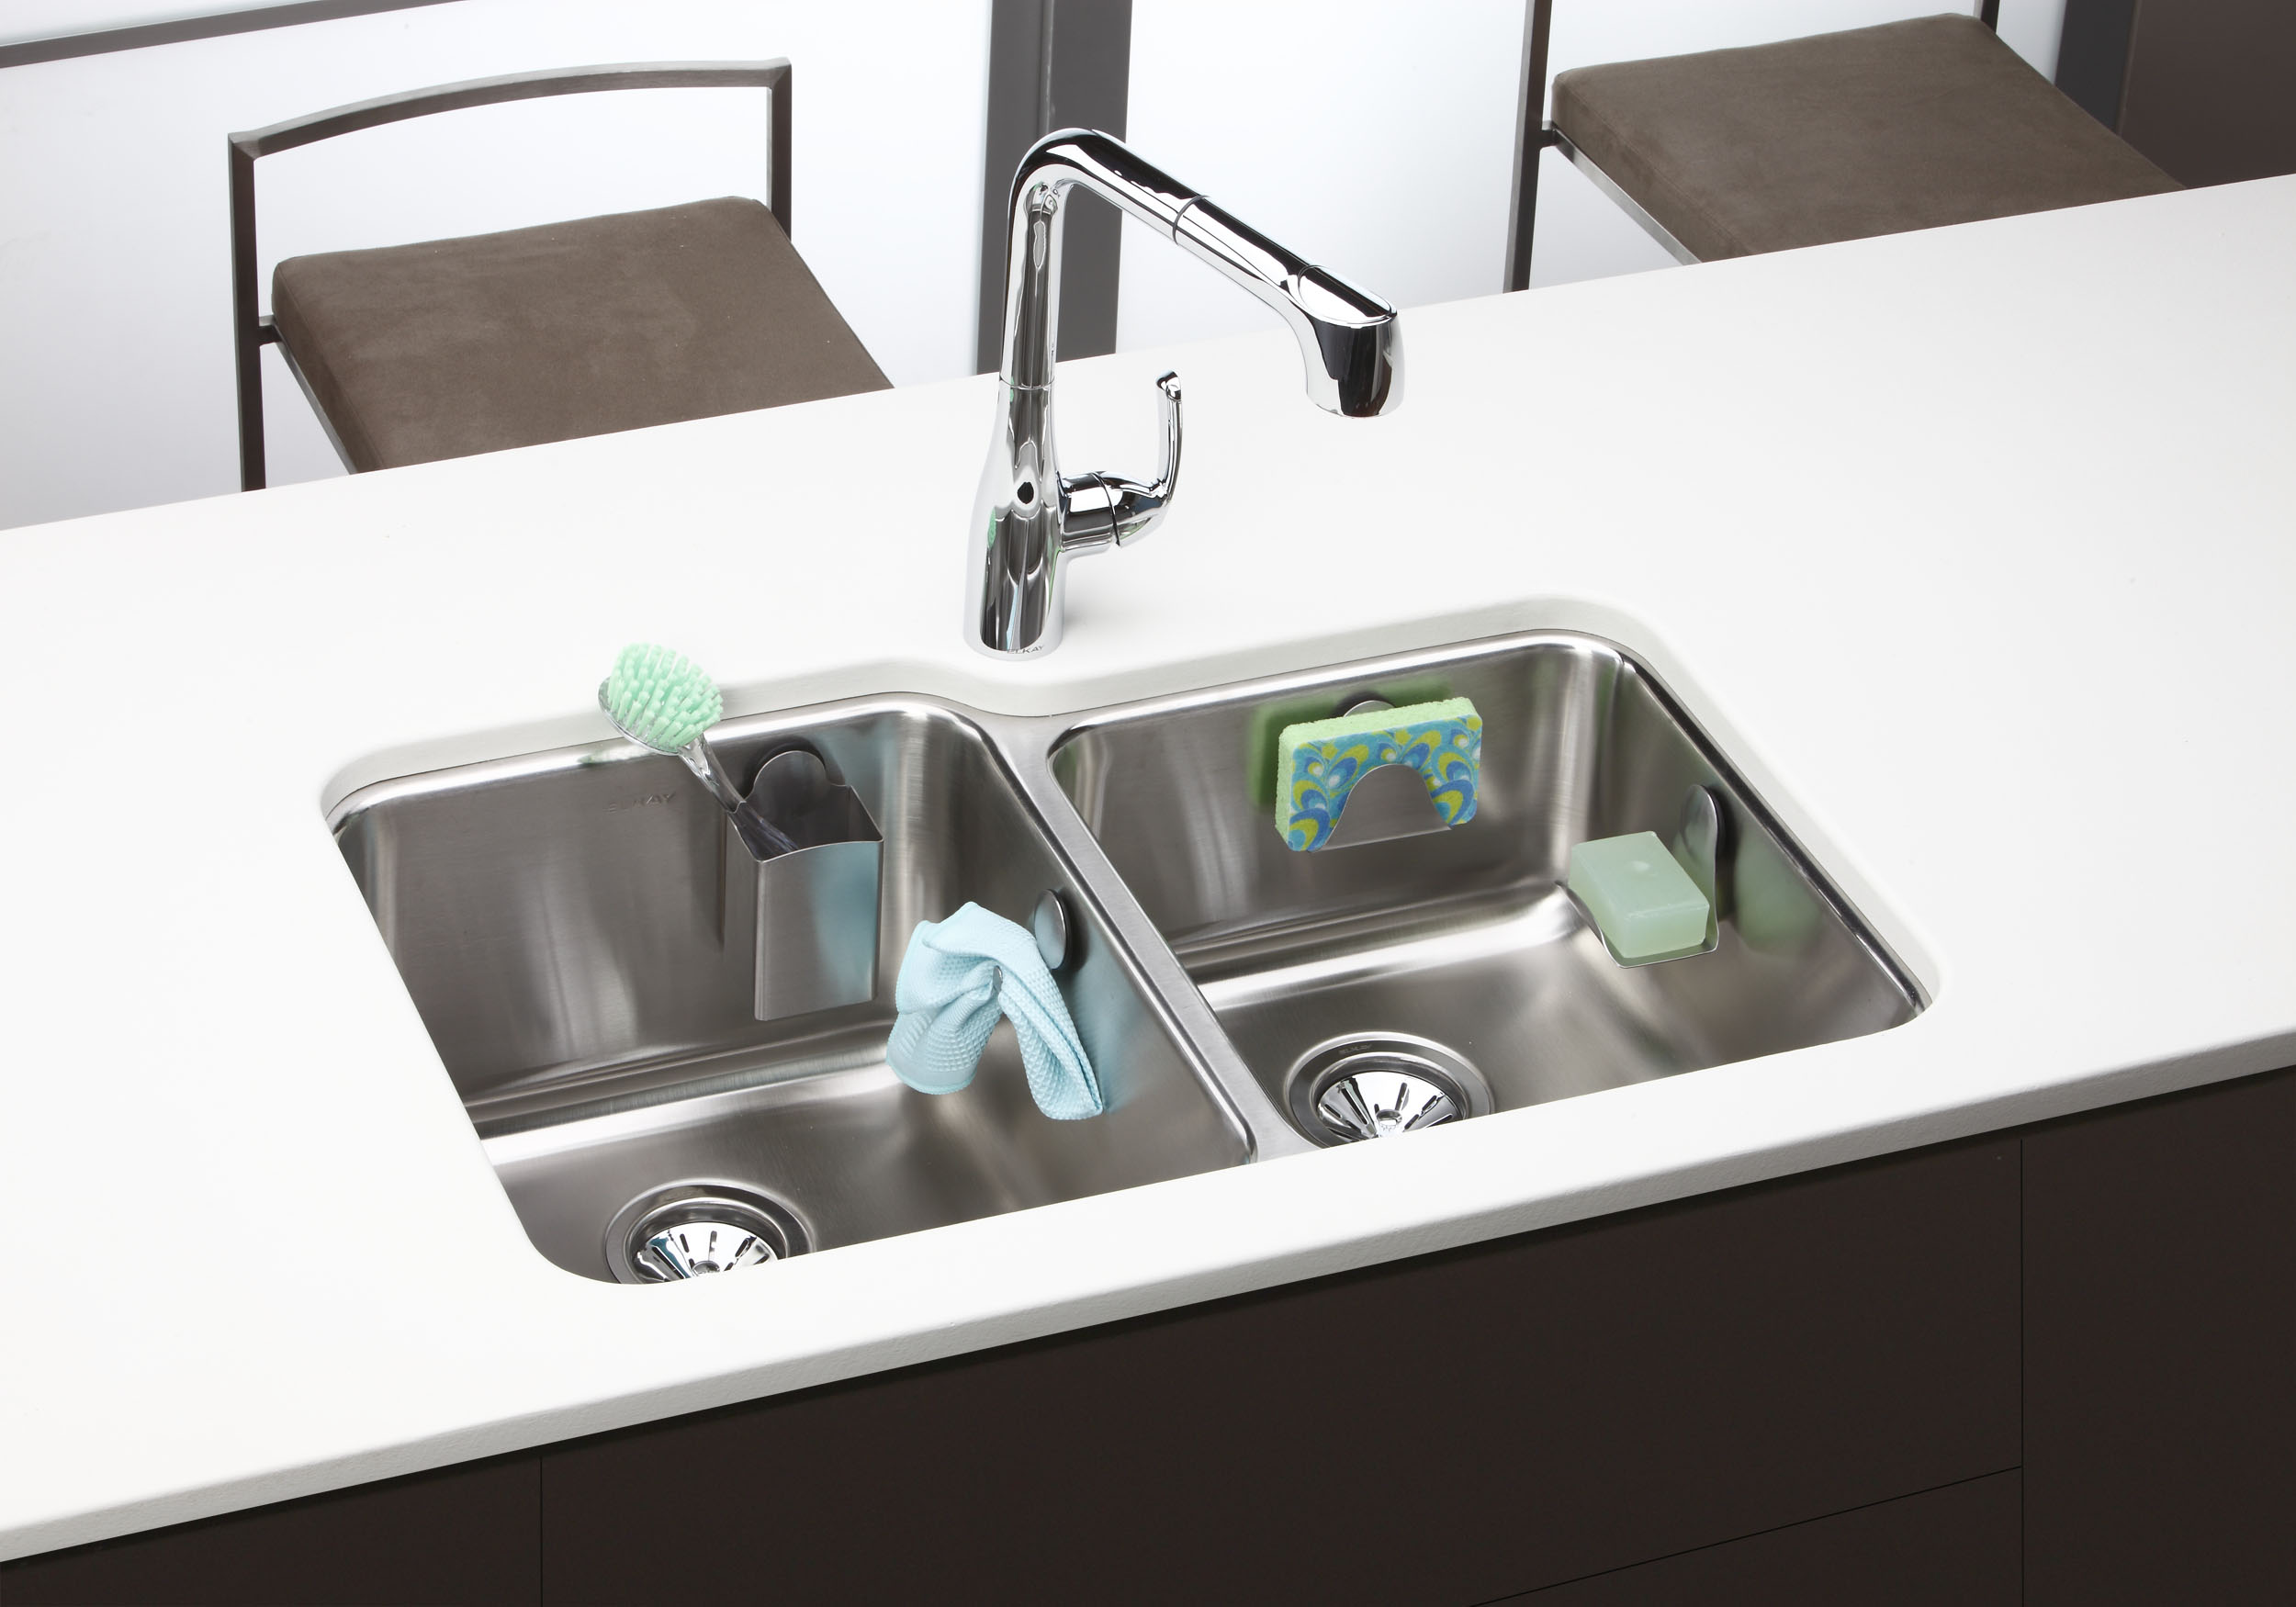 branch office shoe elkay gourmet sink accessories adelphi capital office design office